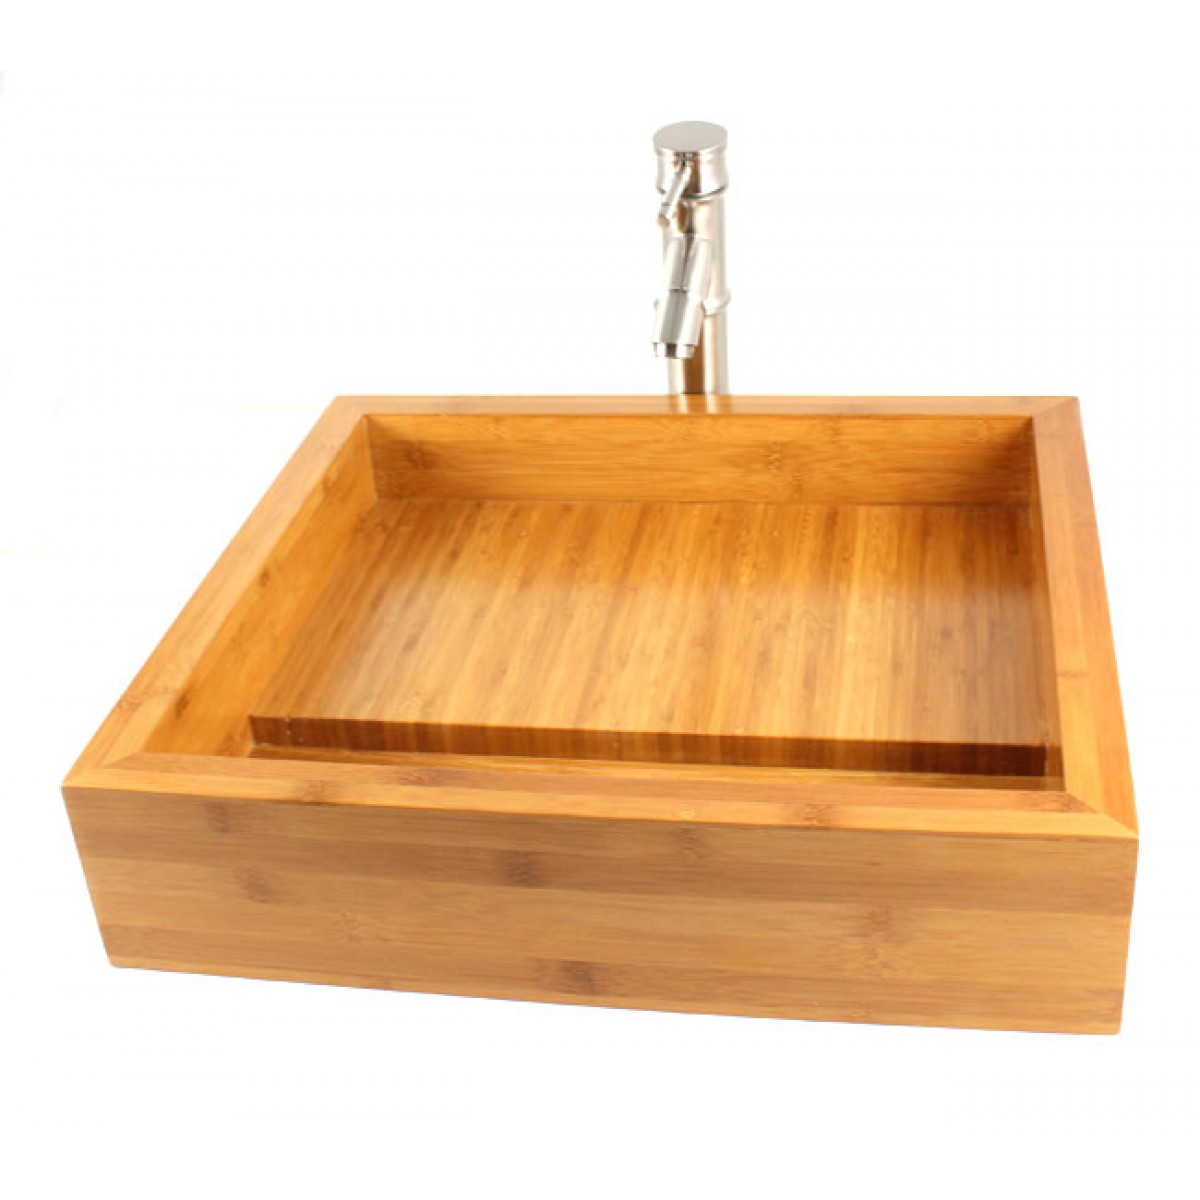 Pure Bamboo Countertop Bathroom Lavatory Vessel Sink